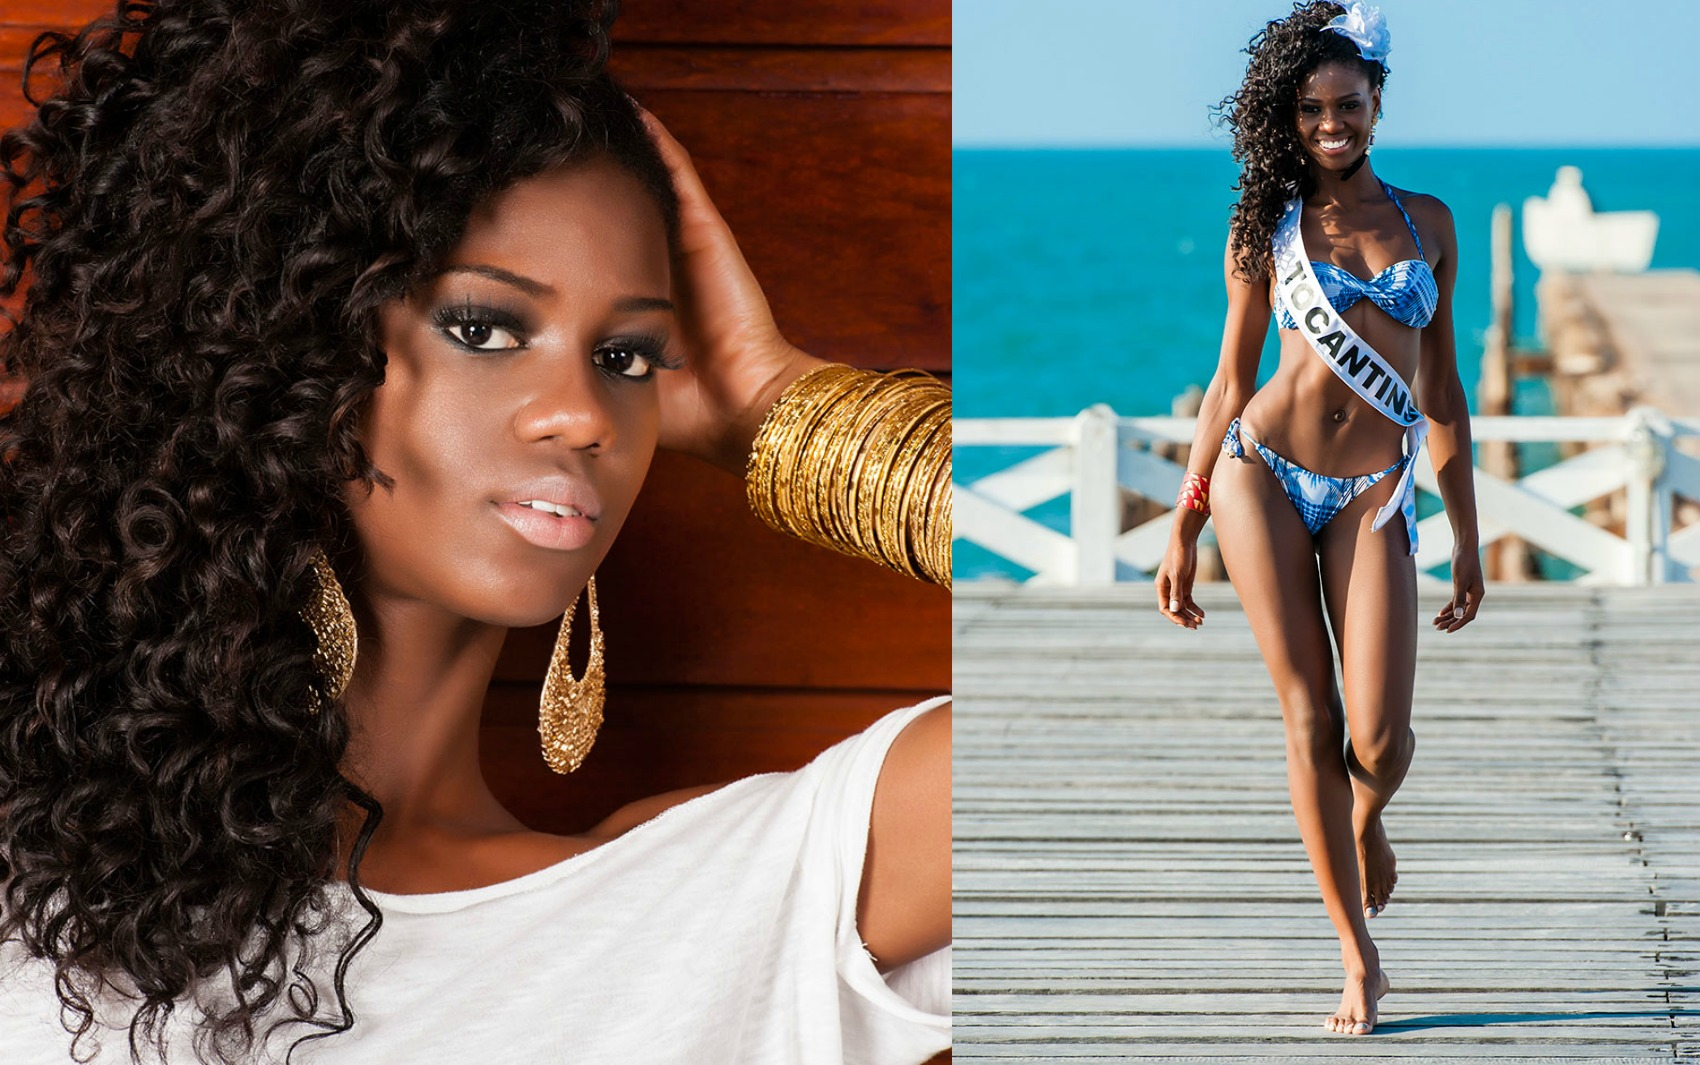 wizelany marques, miss tocantins 2014. Lvj3a5n8